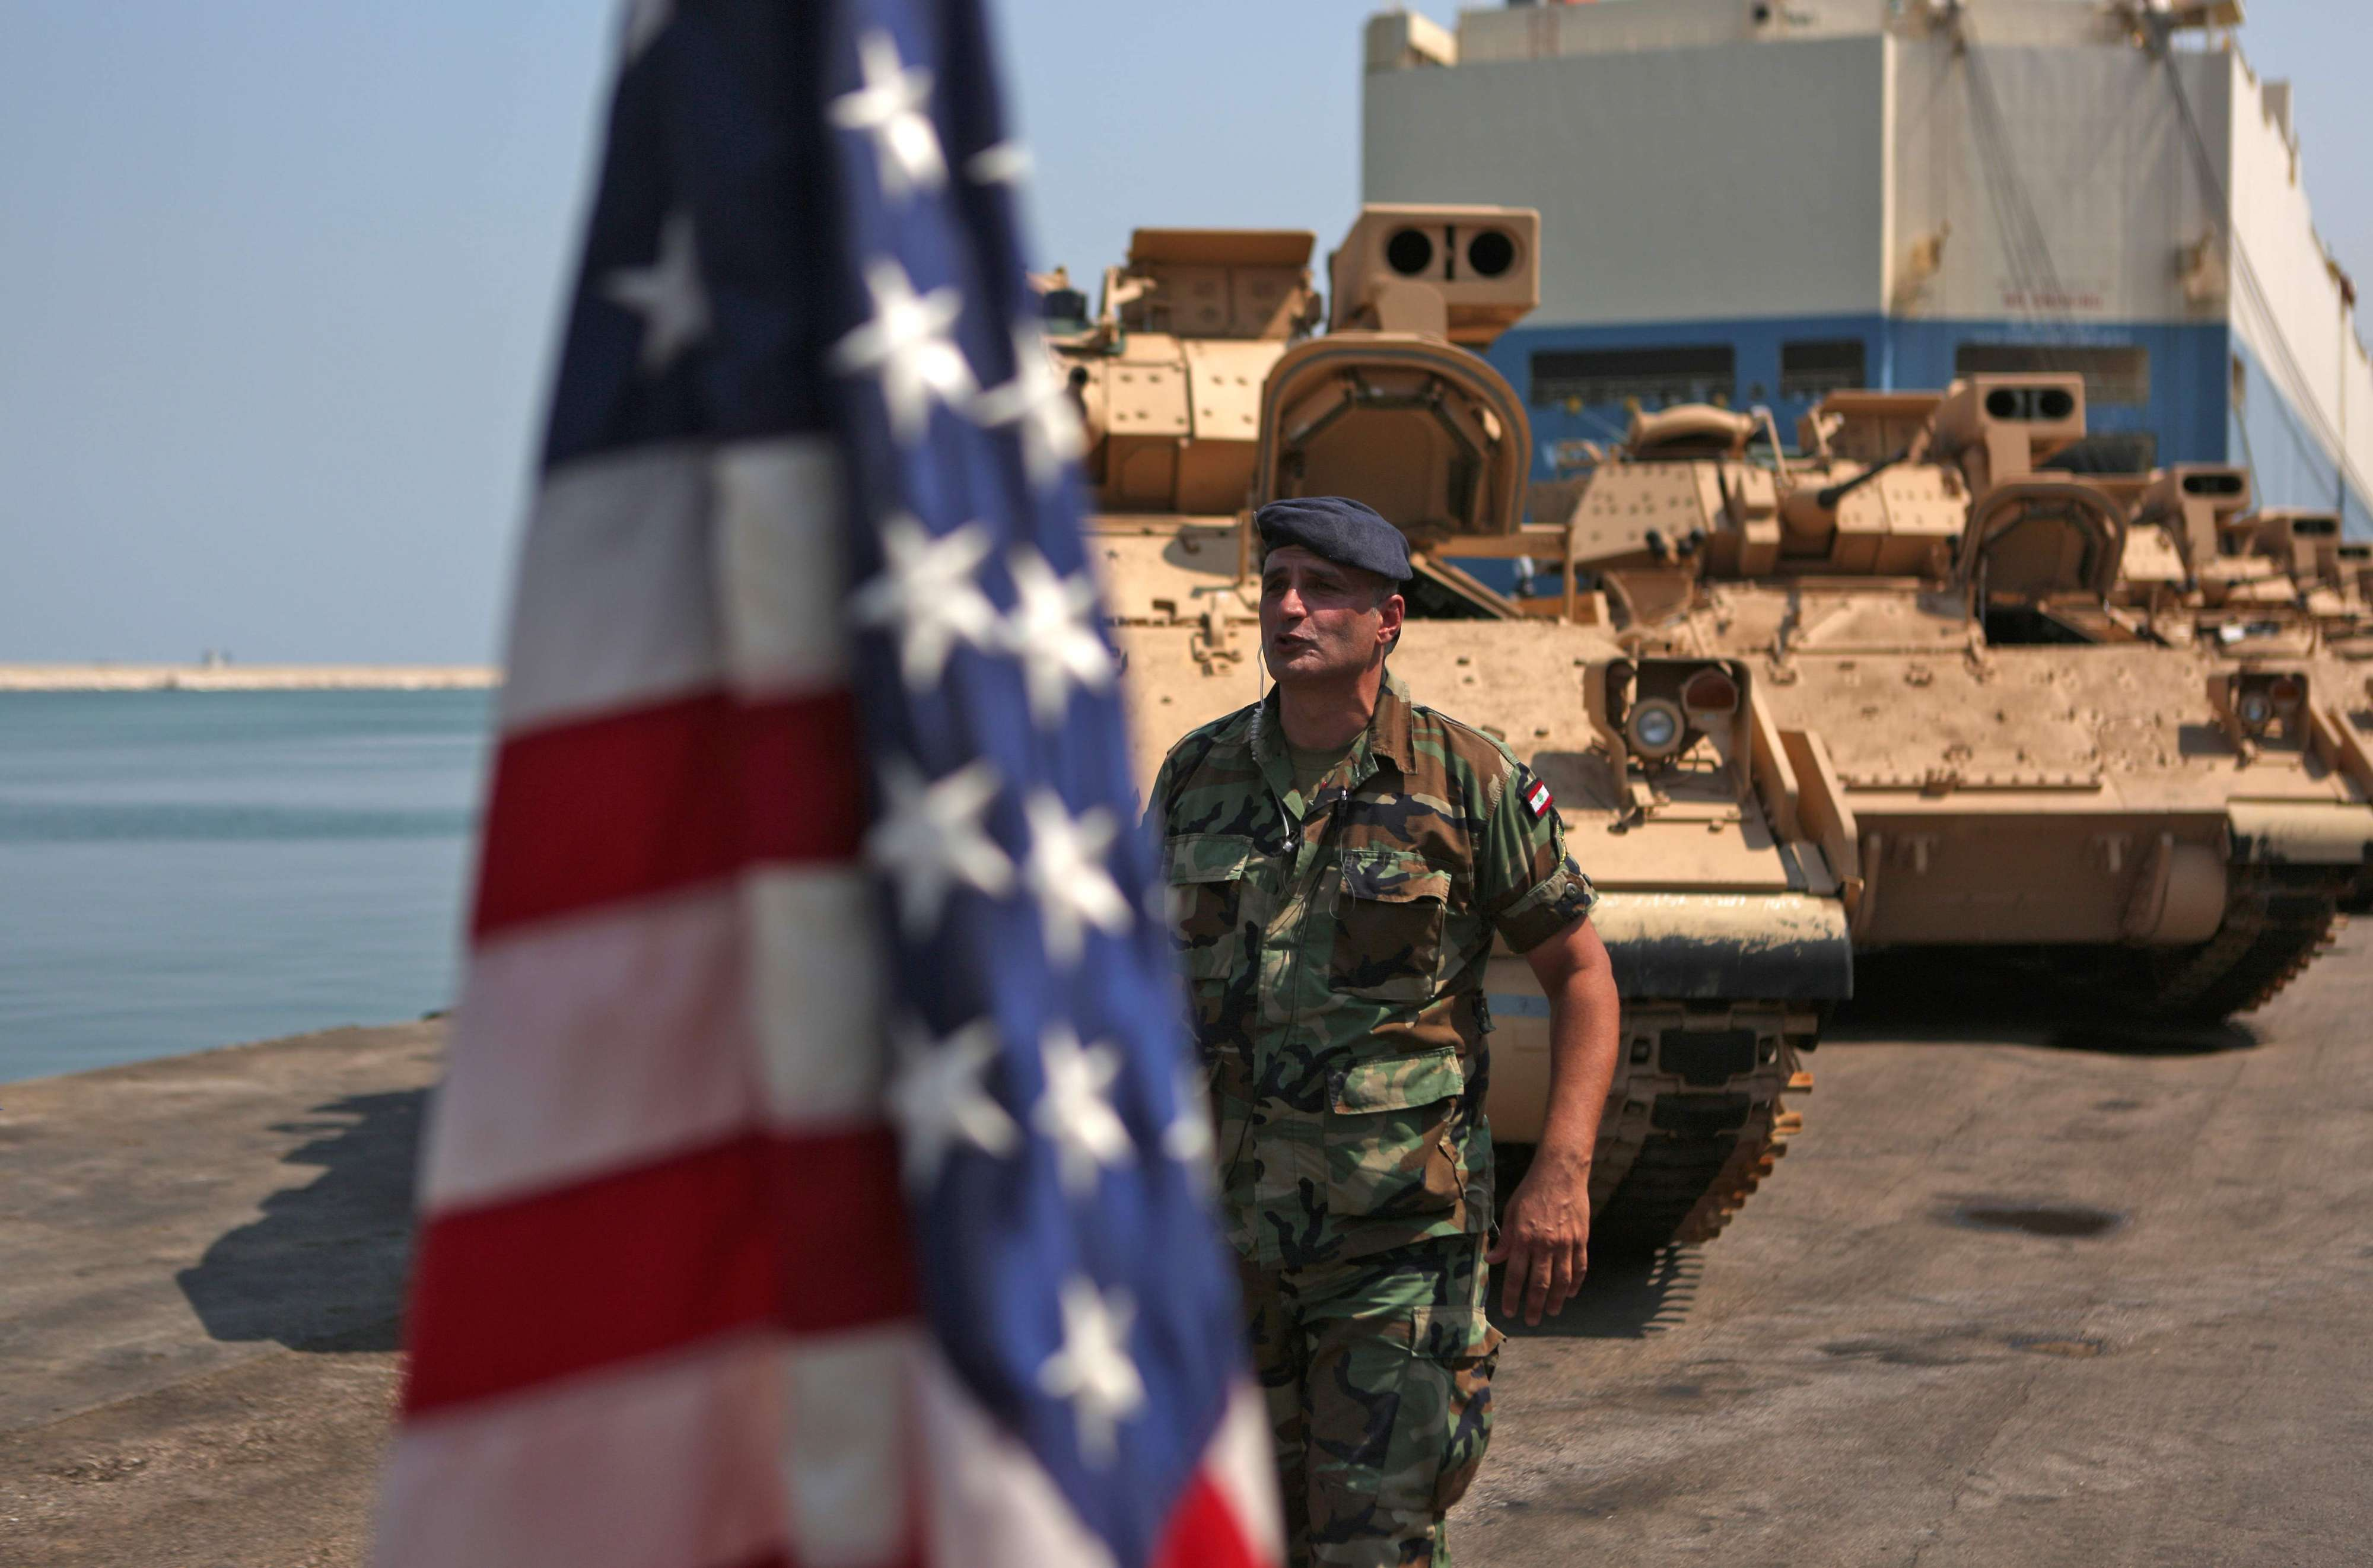 A Lebanese soldier walks past an American flag flying next to US-made Bradley Fighting Vehicles at the port of Beirut, last August. (AFP)